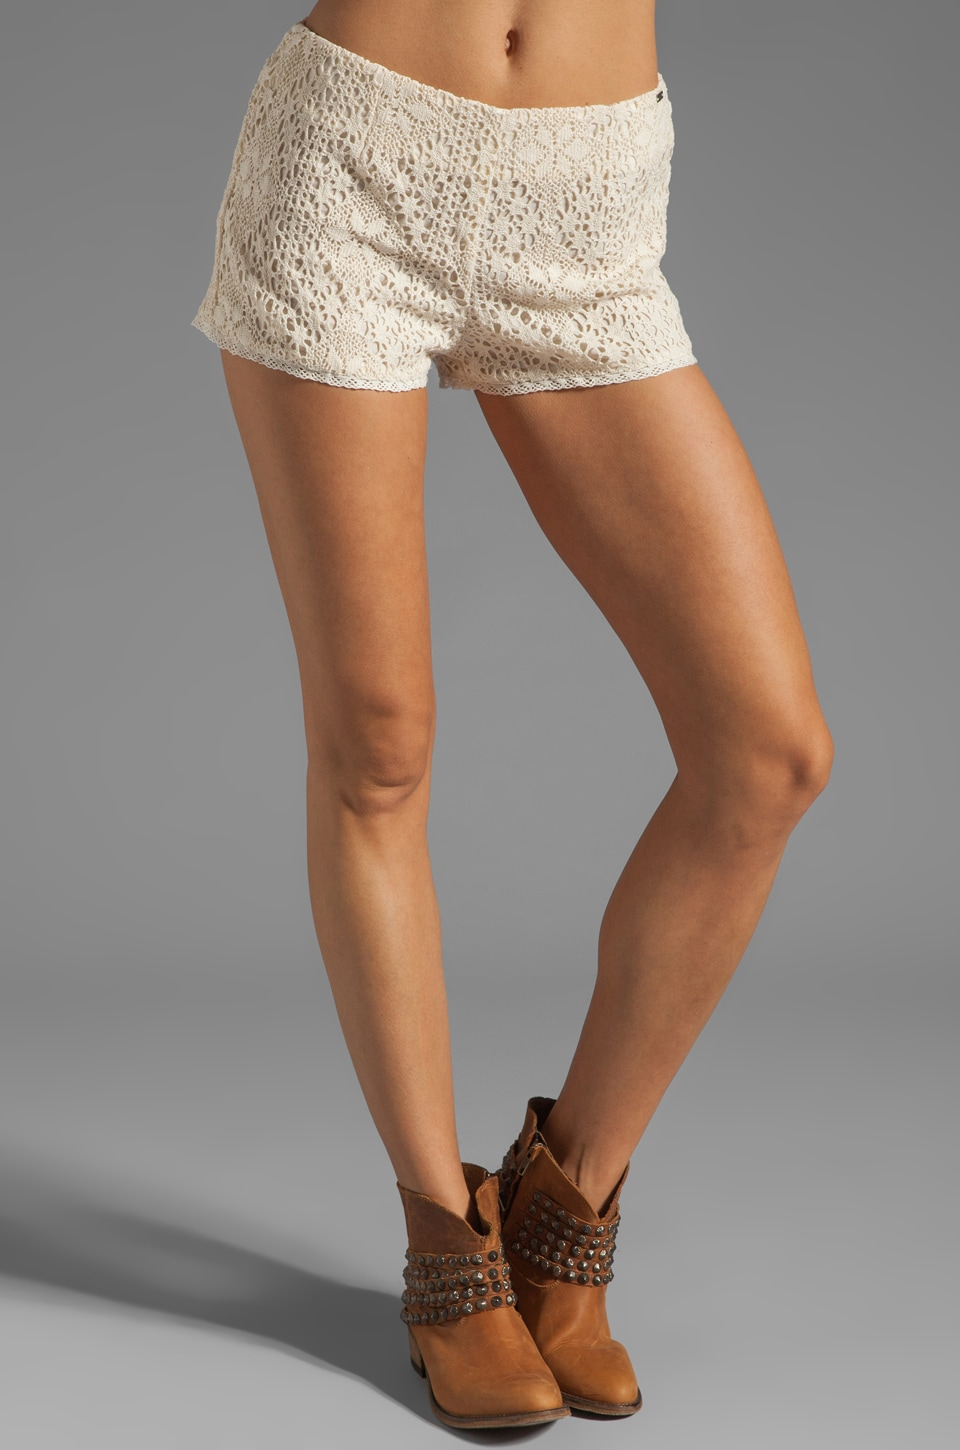 Obey Stevie Lace Short in Cream